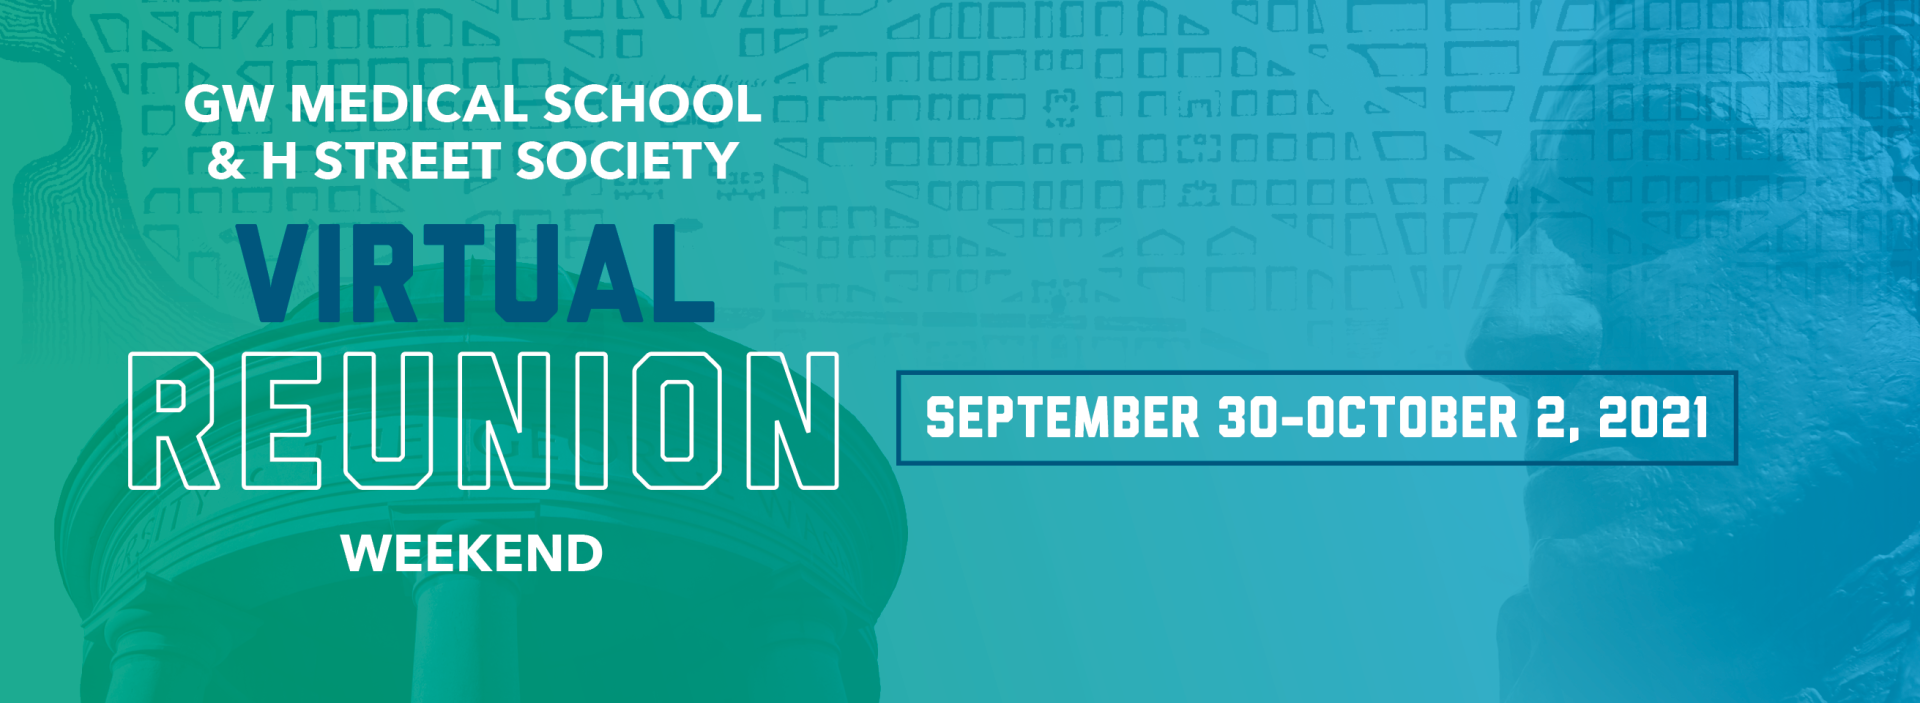 GW Medical School and H Street Society Virtual Reunion Weekend Sept 30 - Oct 2, 2021